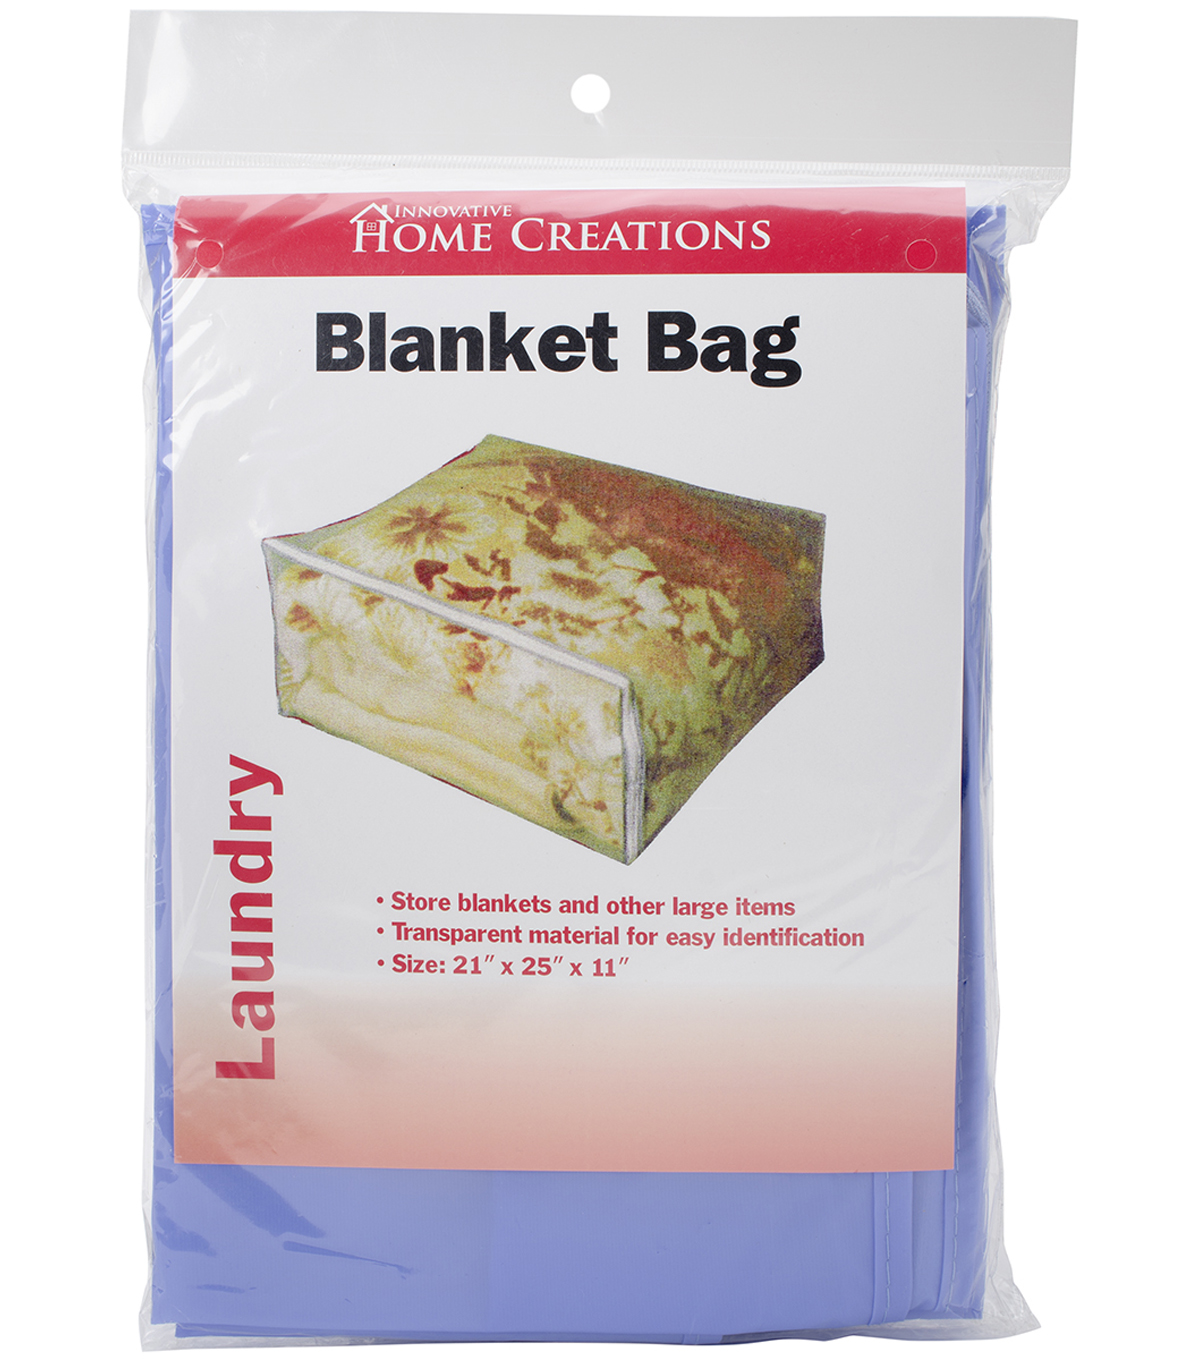 Innovative Home Creations Blanket Bag